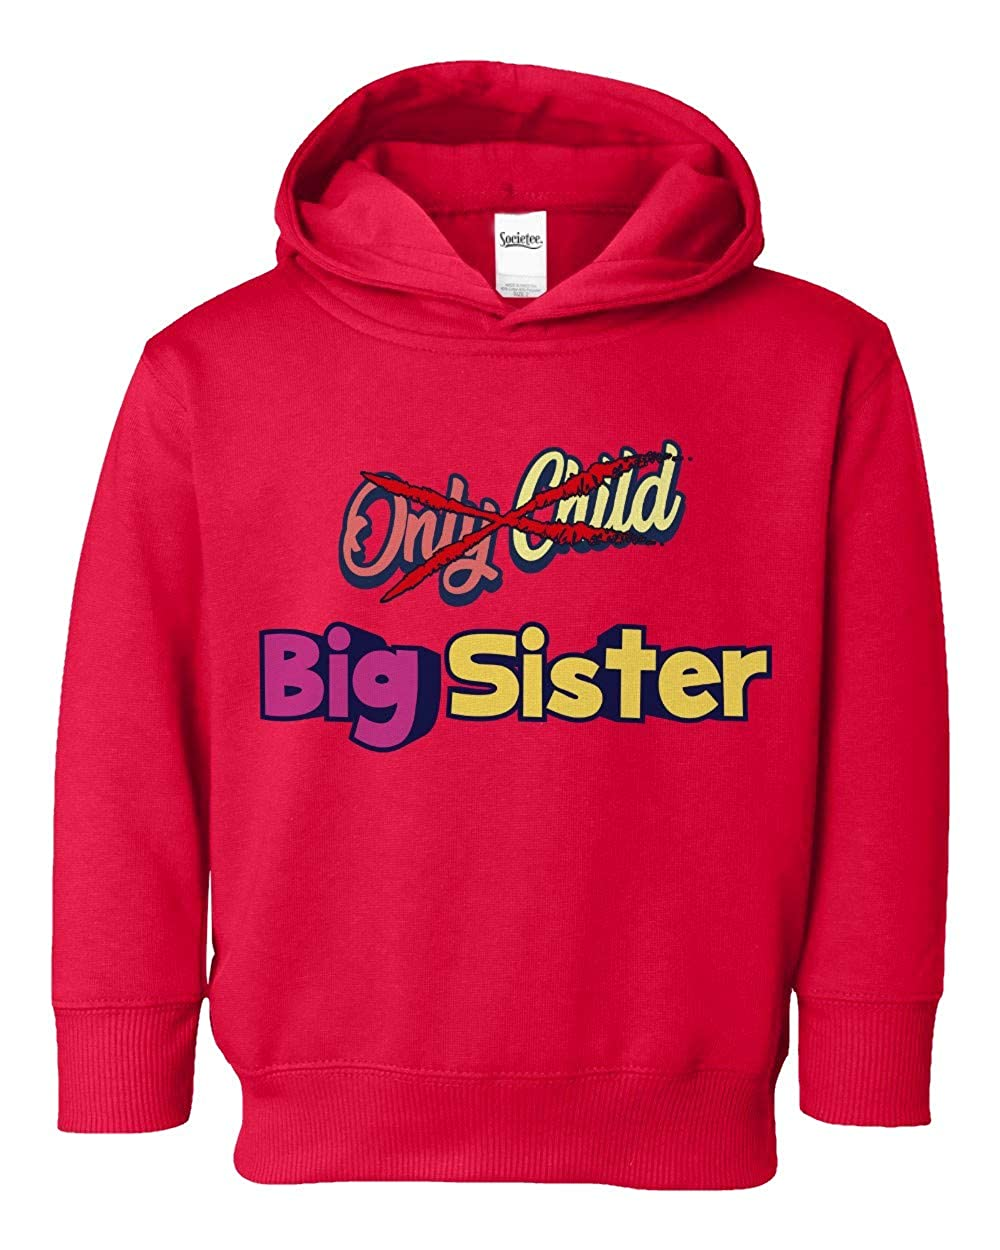 Societee from Only Child to Big Sister Girls Boys Toddler Hooded Sweatshirt